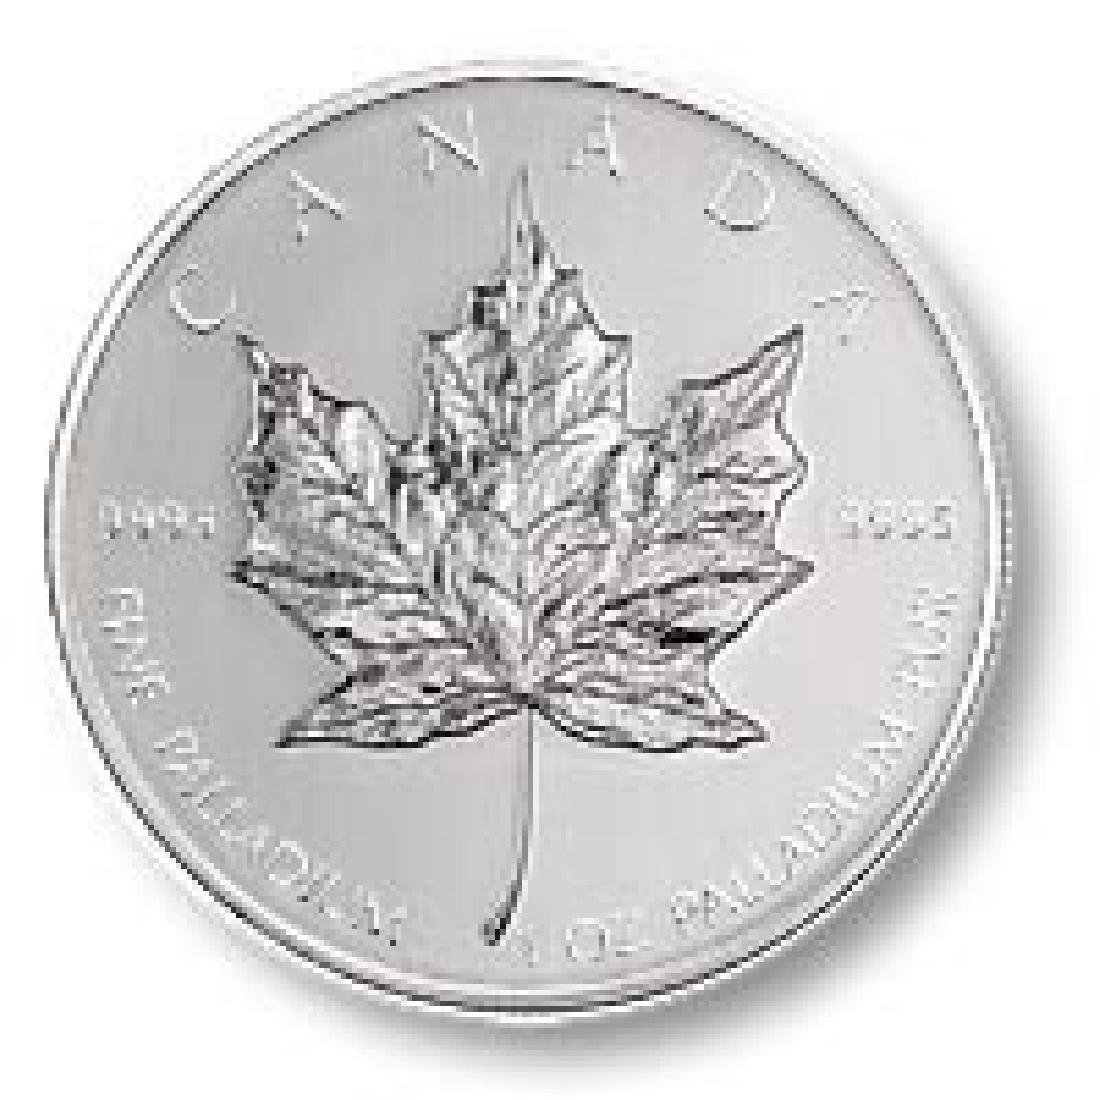 Palladium Maple Leaf One Ounce (Dates of our Choice)